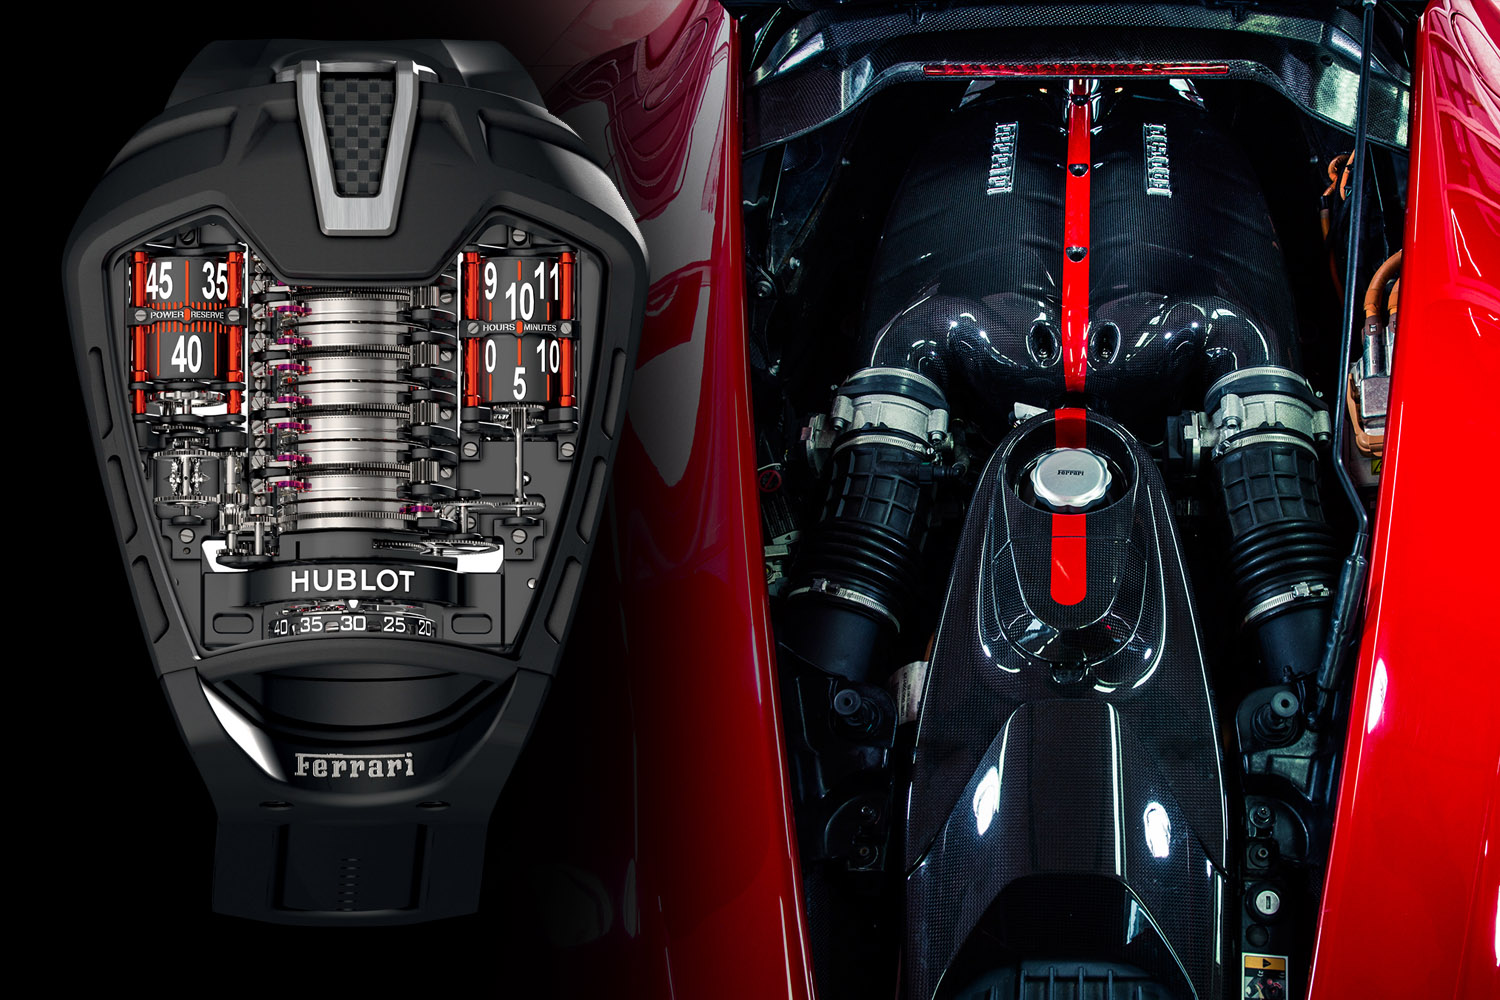 Hublot MP-05 Laferrari engine